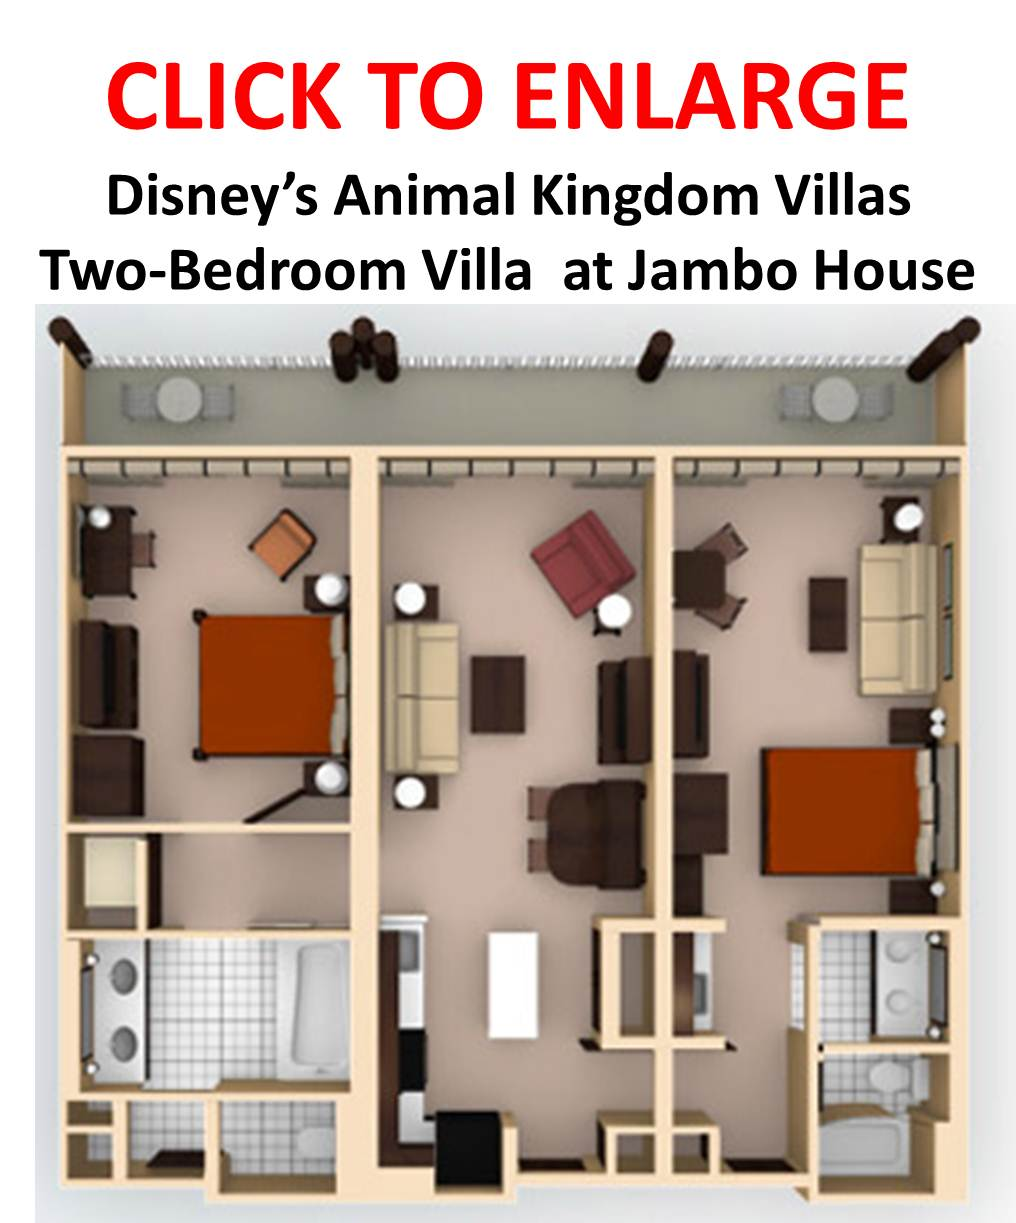 Akl dvc value 2 bedroom villa wdwmagic unofficial walt disney world discussion forums for Animal kingdom 2 bedroom villa floor plan